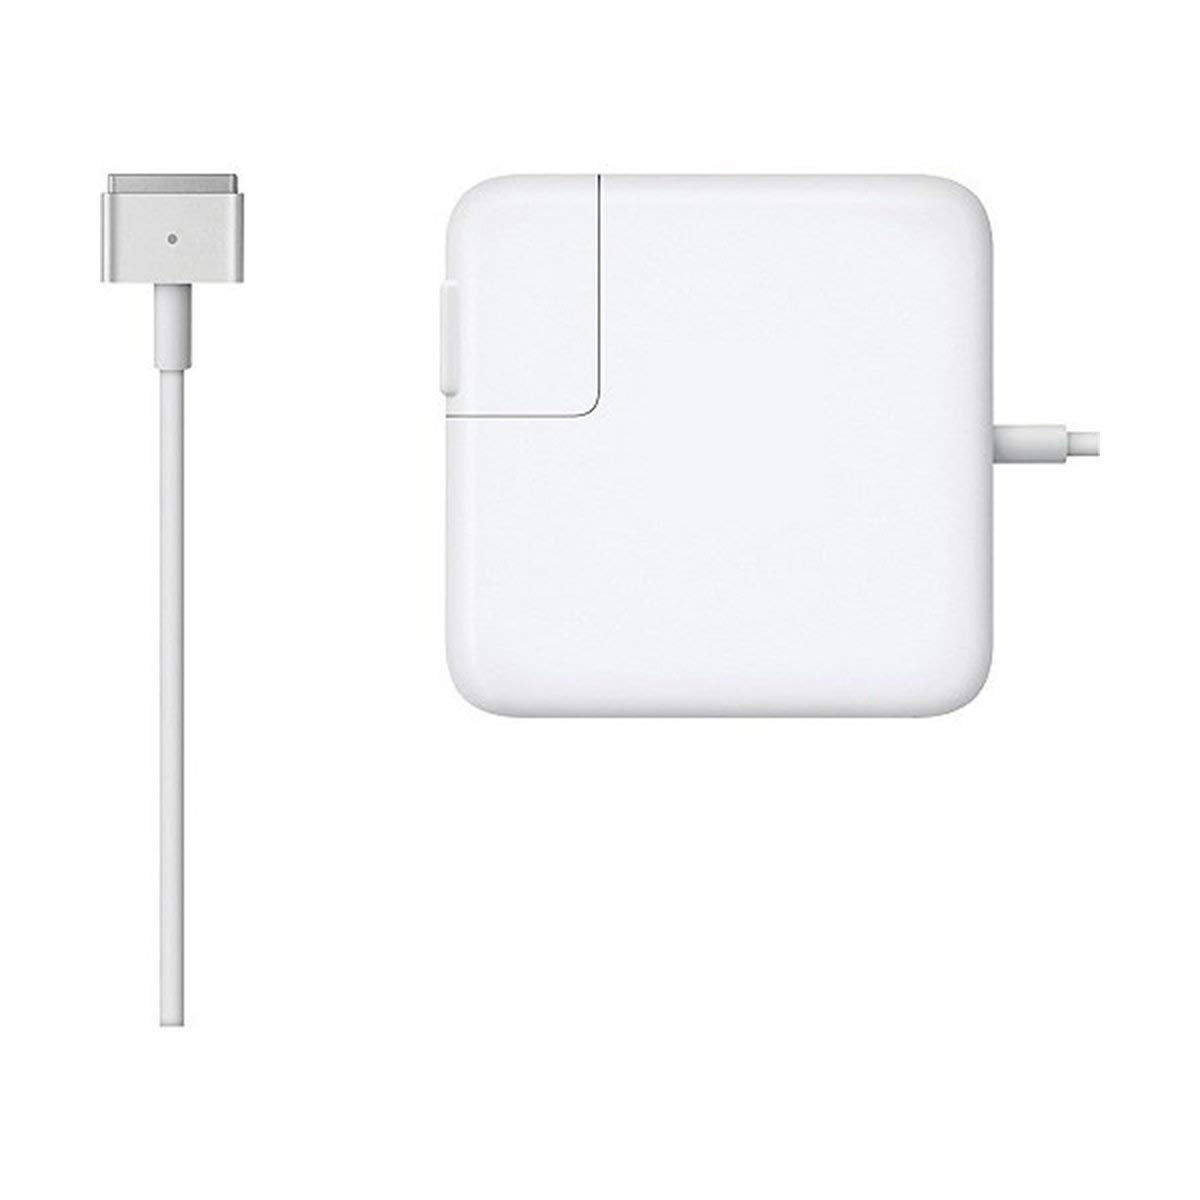 Mac Book Air Charger, Ac 45w Magsafe 2 (T-Tip) Connector Power Adapter Charger for Mac Book Air 11 inch and 13 inch (for Mac Book Air Released After Mid 2012)